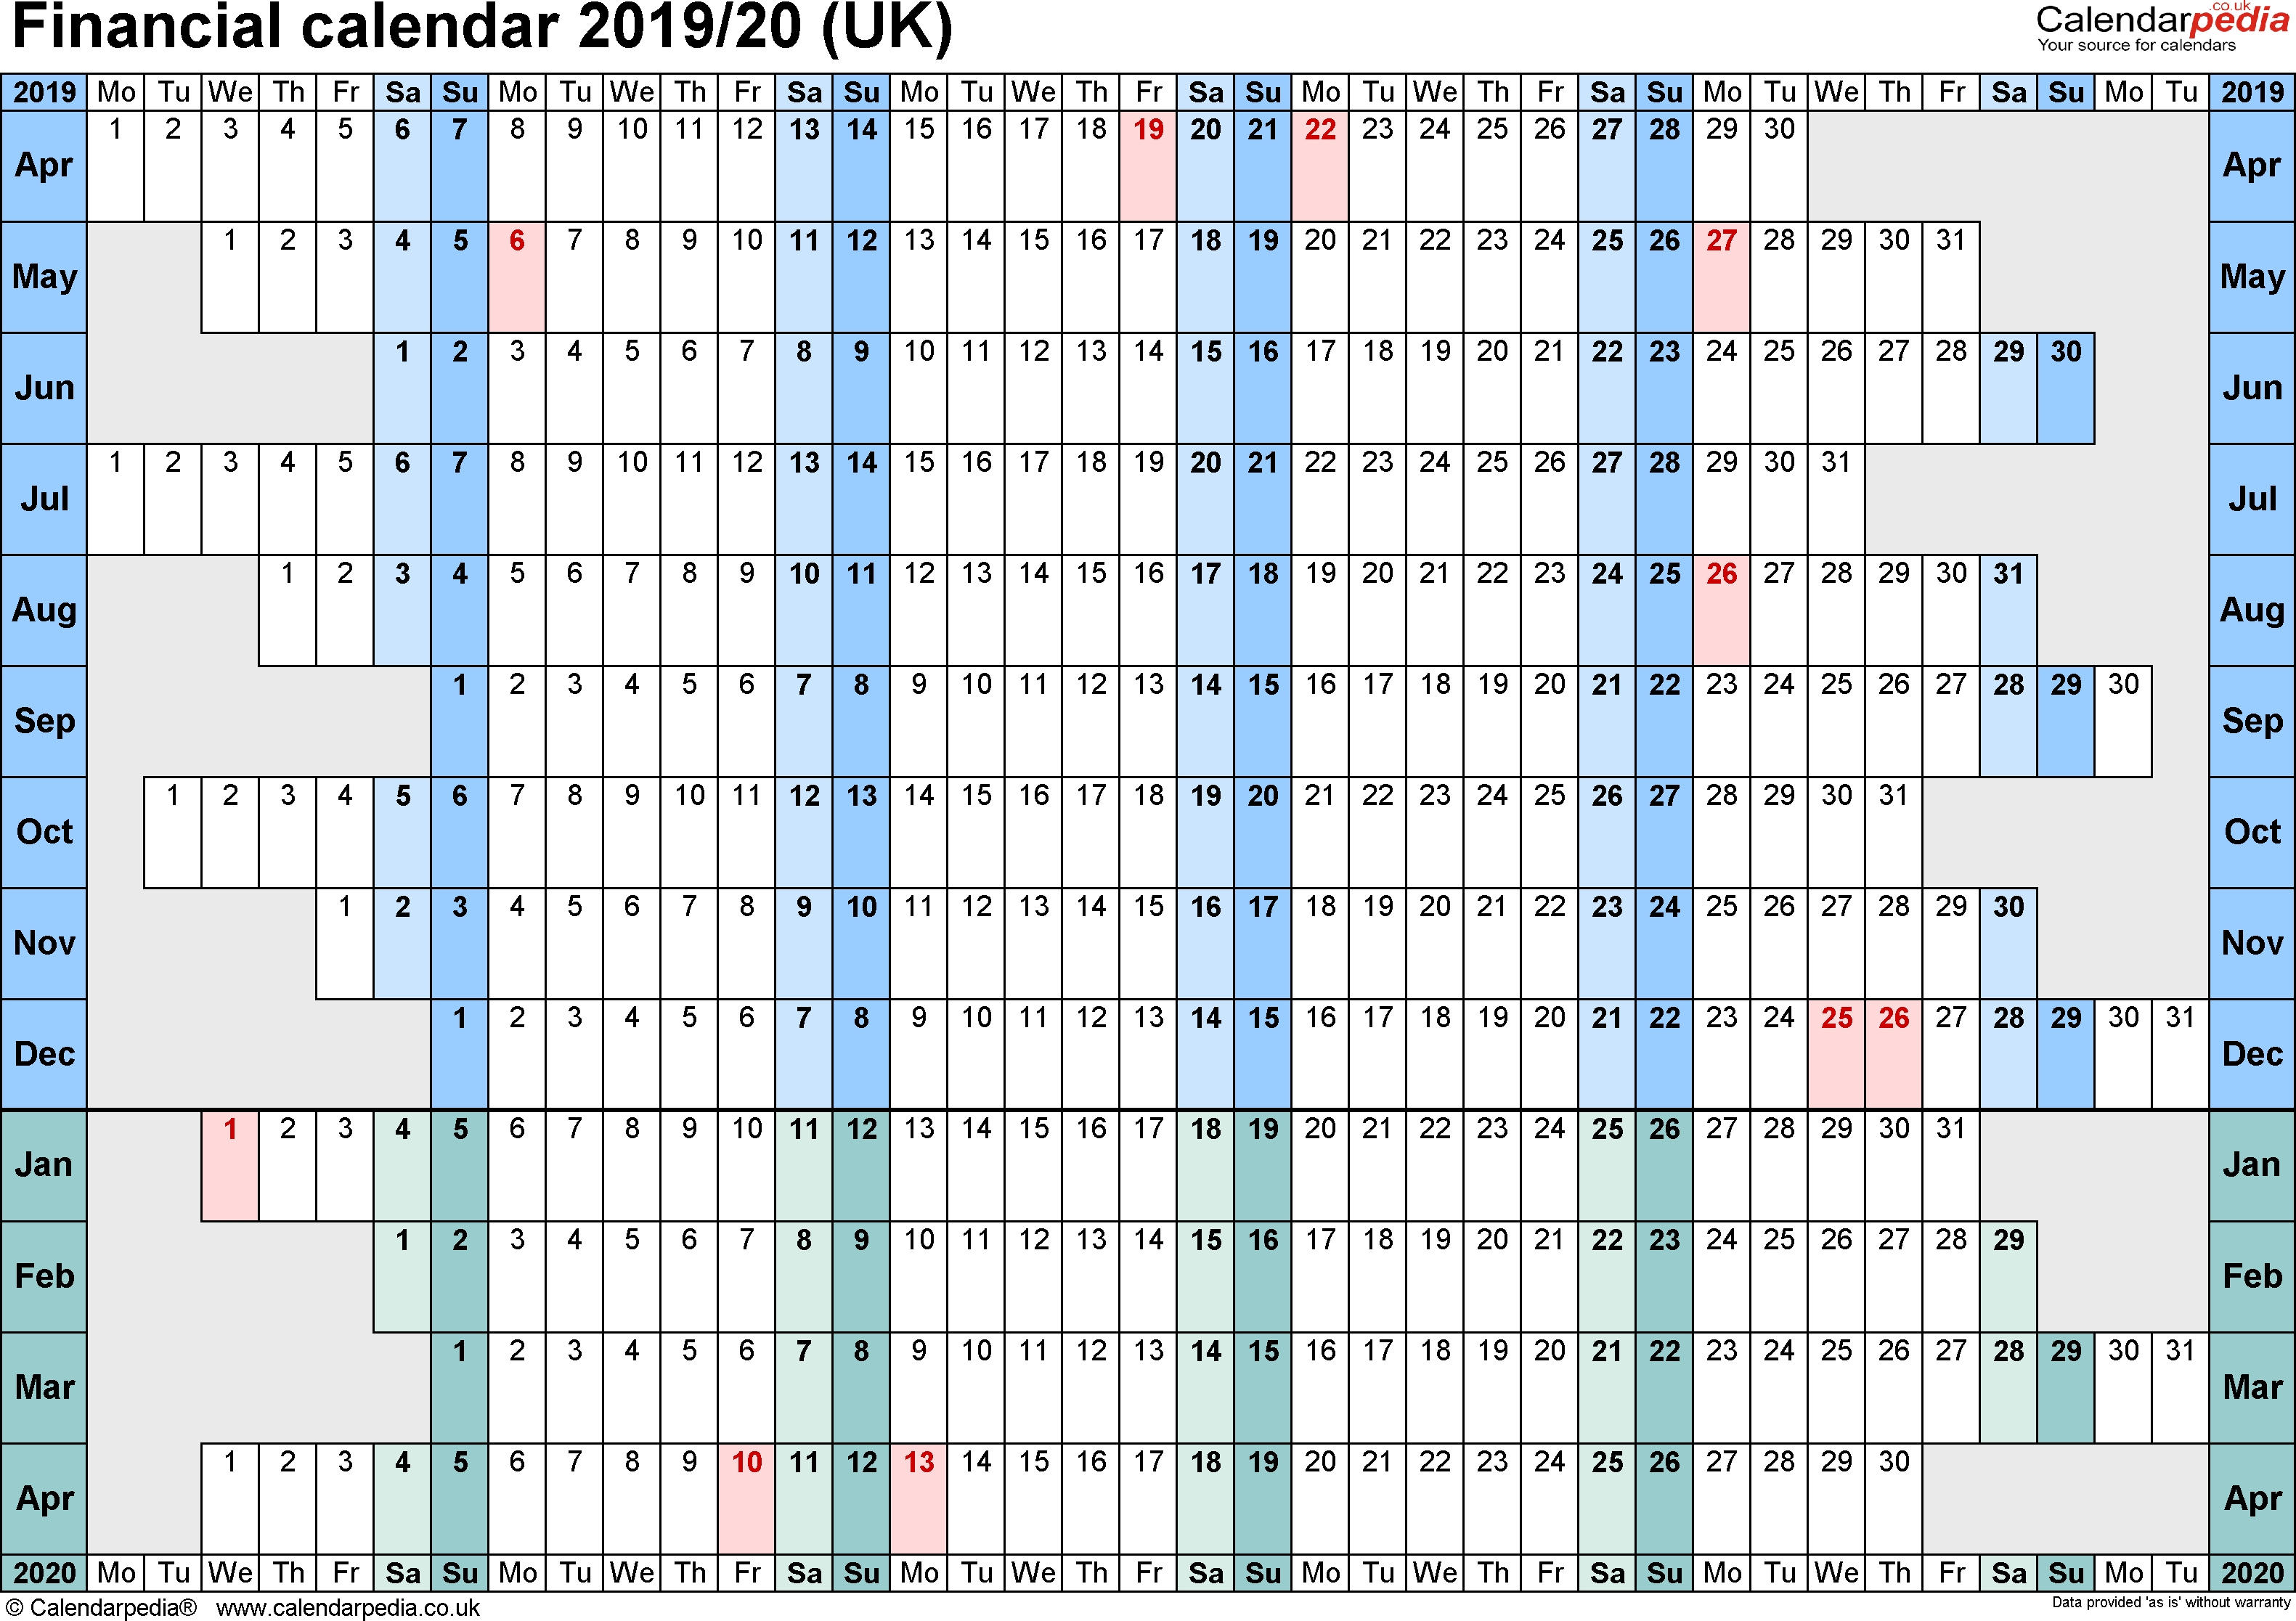 Financial Calendars 2019/20 (Uk) In Pdf Format in 2019-2020 Tax Calendar Month And Week